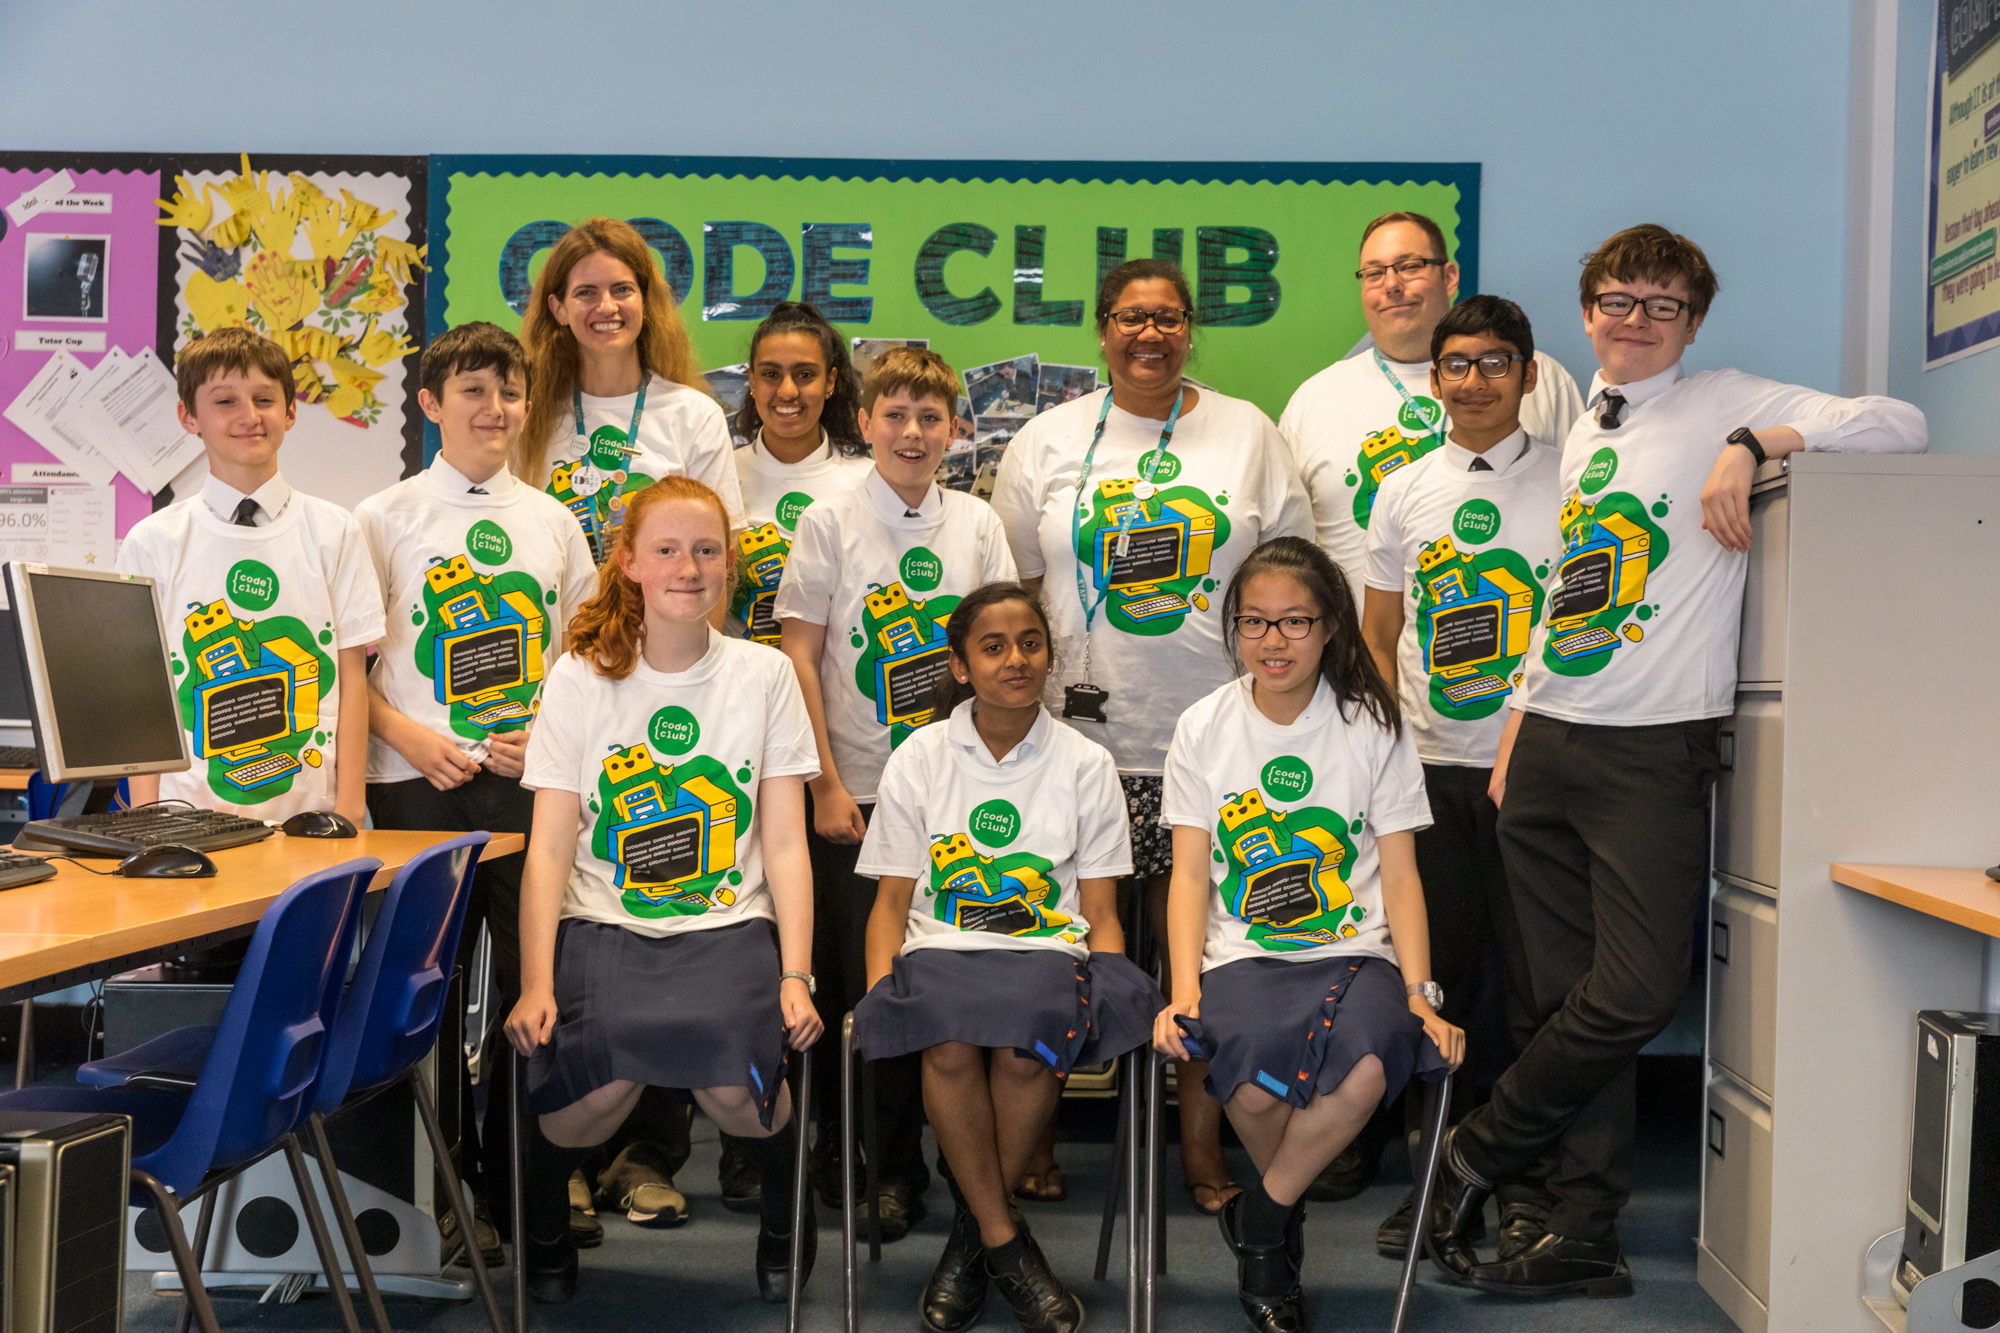 Children from Cheam Code Club wearing the winning T-shirt design.